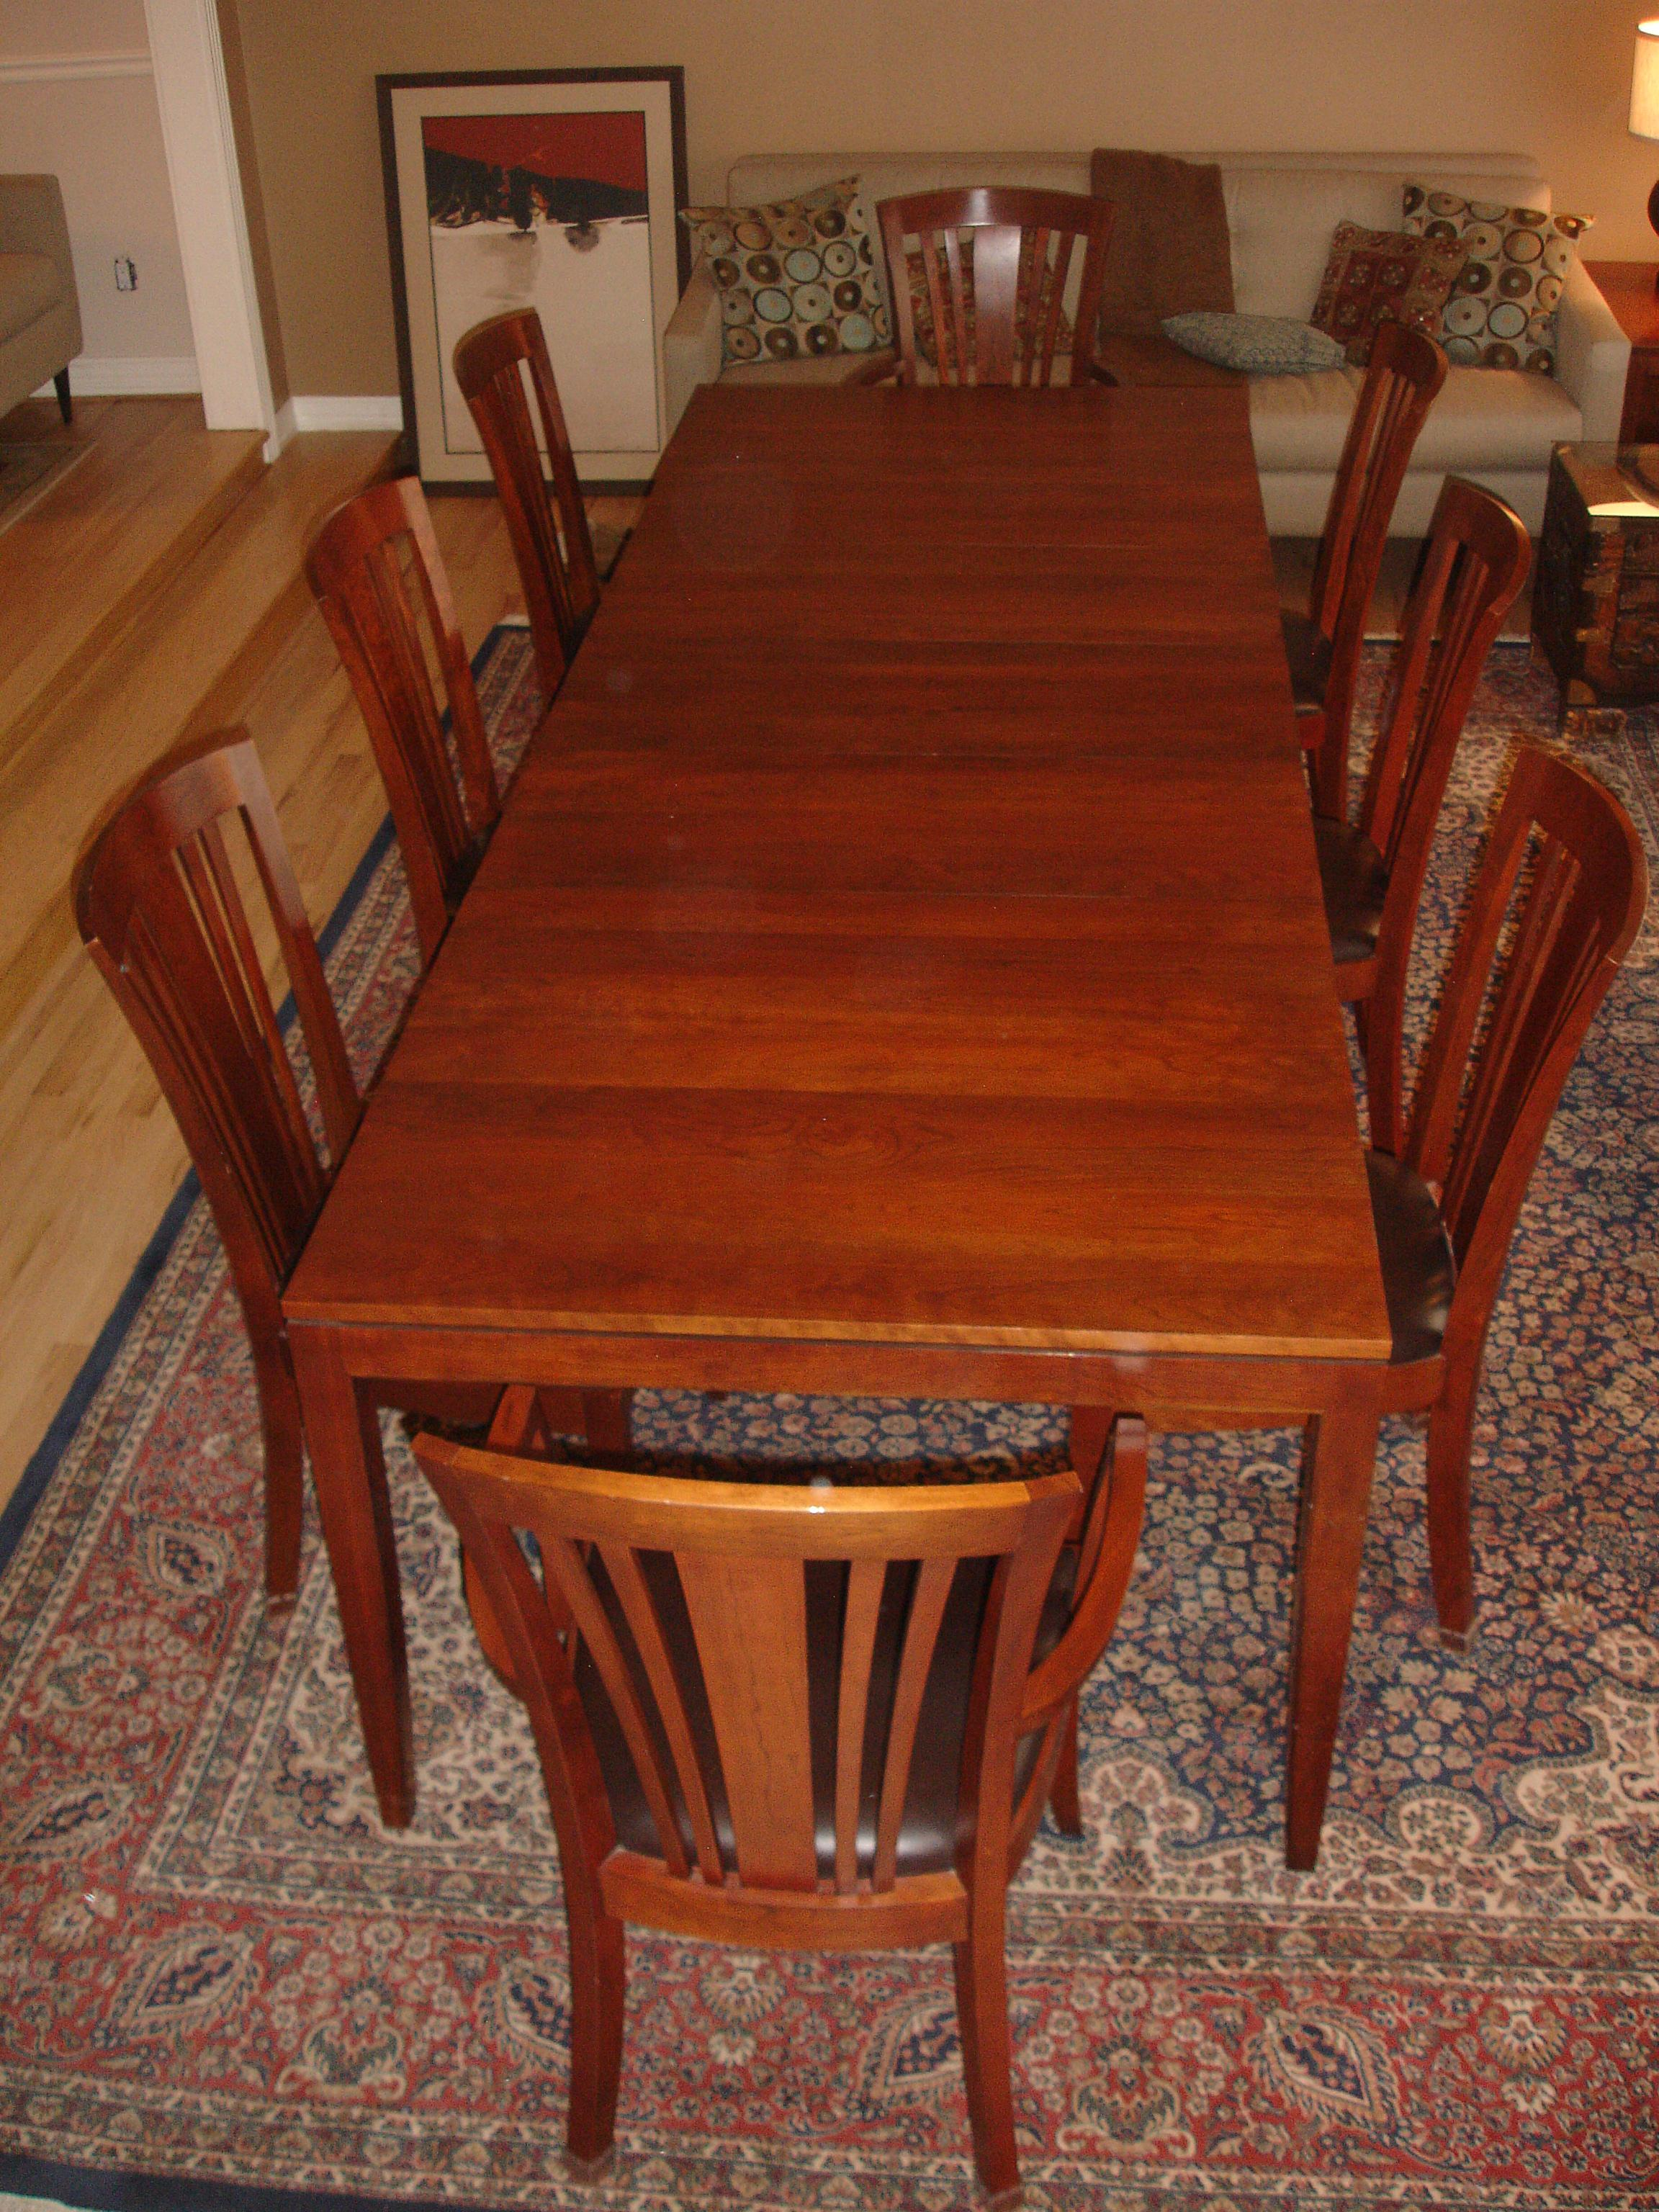 Gentil One (1) Rectangular Straight Leg Metropolitan Dining Table In Solid Cherry  With Three Aproned